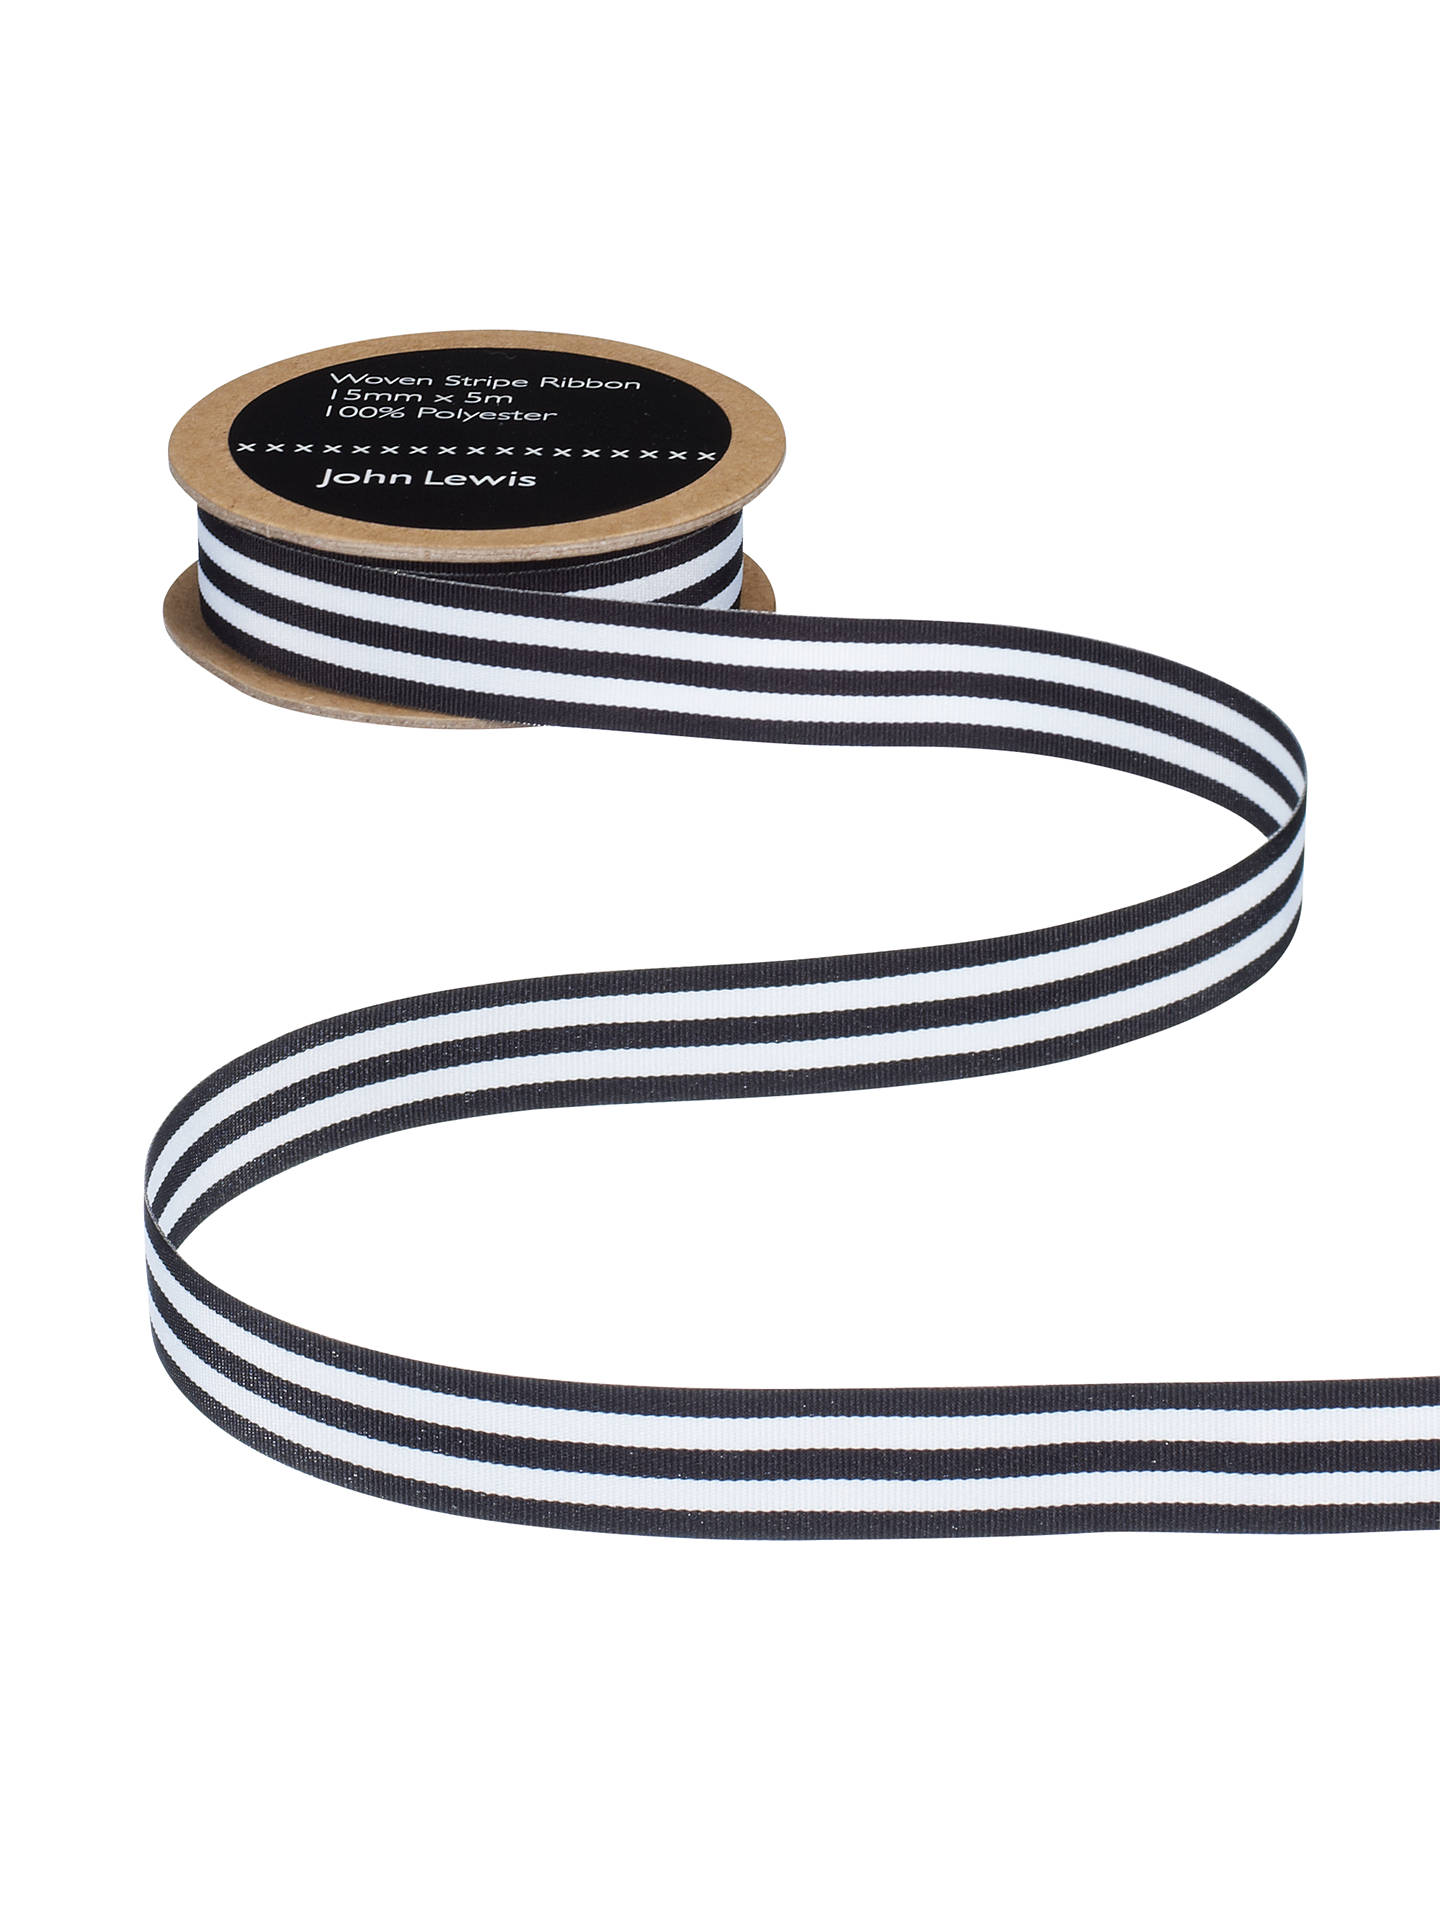 Buy John Lewis & Partners Woven Ribbon, Black/White, 25mm Online at johnlewis.com